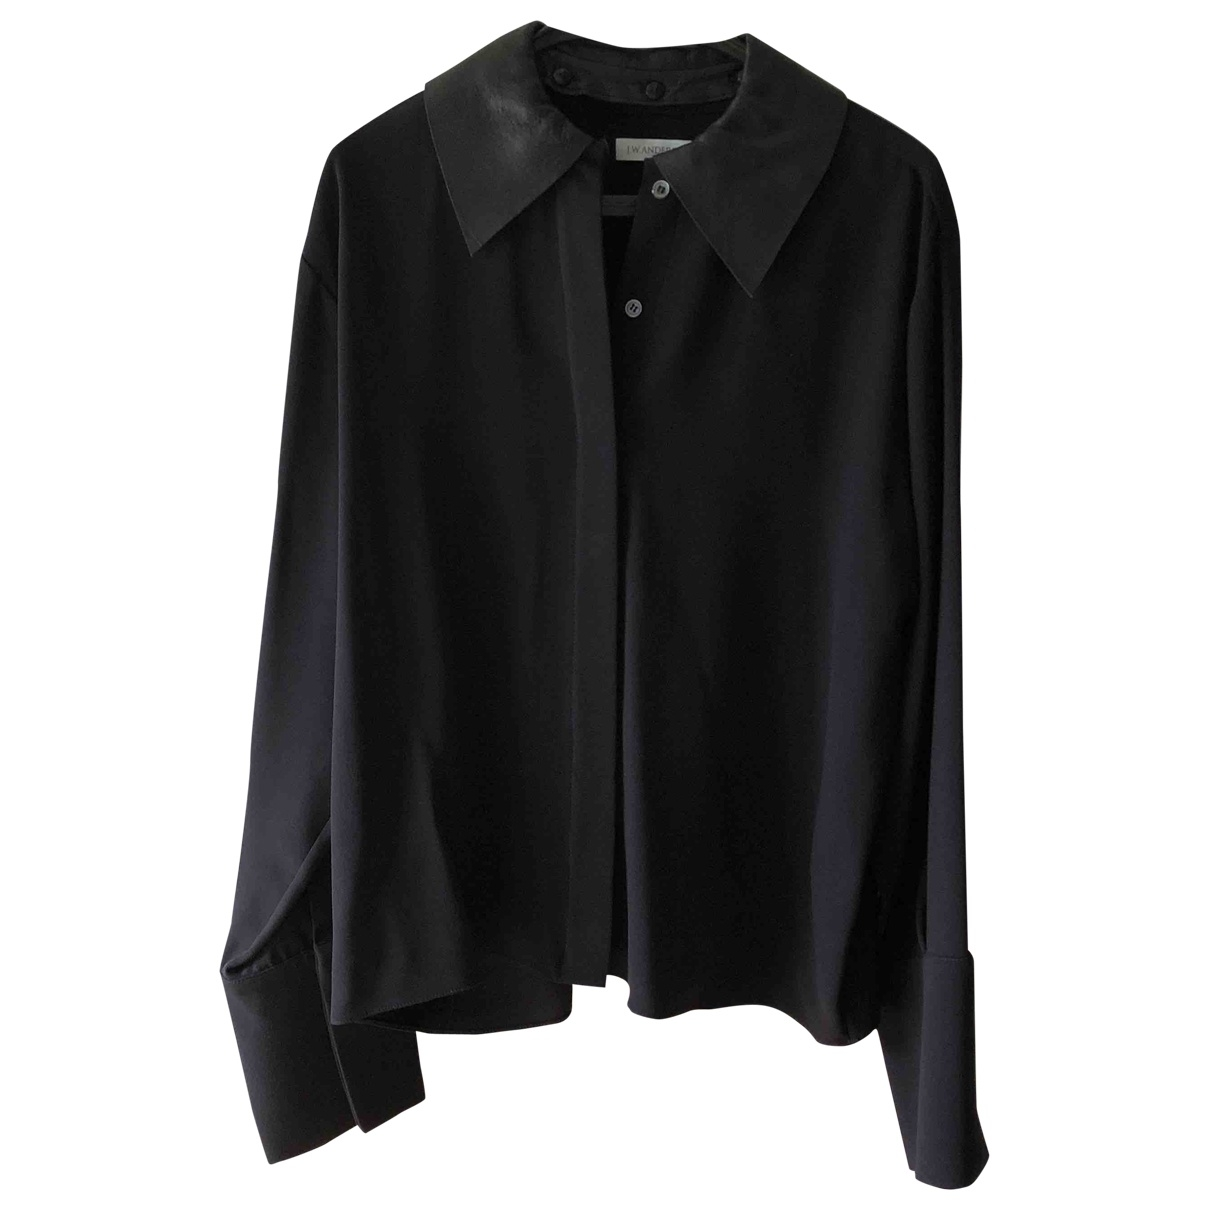 J.w. Anderson \N Top in  Marine Polyester